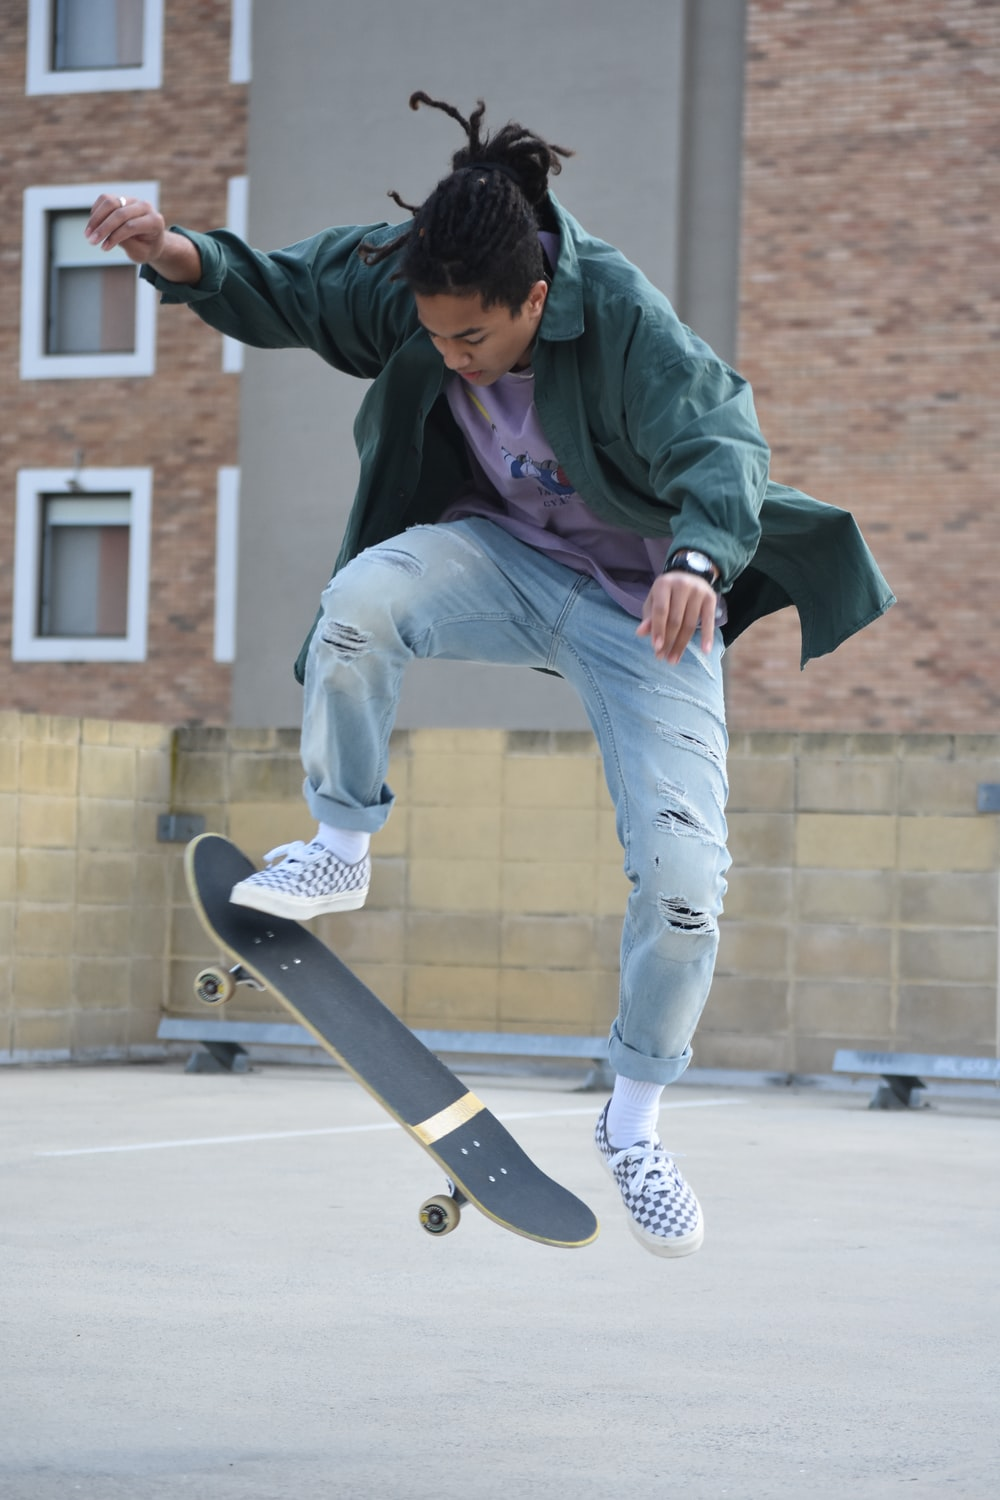 man in green hoodie and blue denim jeans sitting on skateboard during daytime